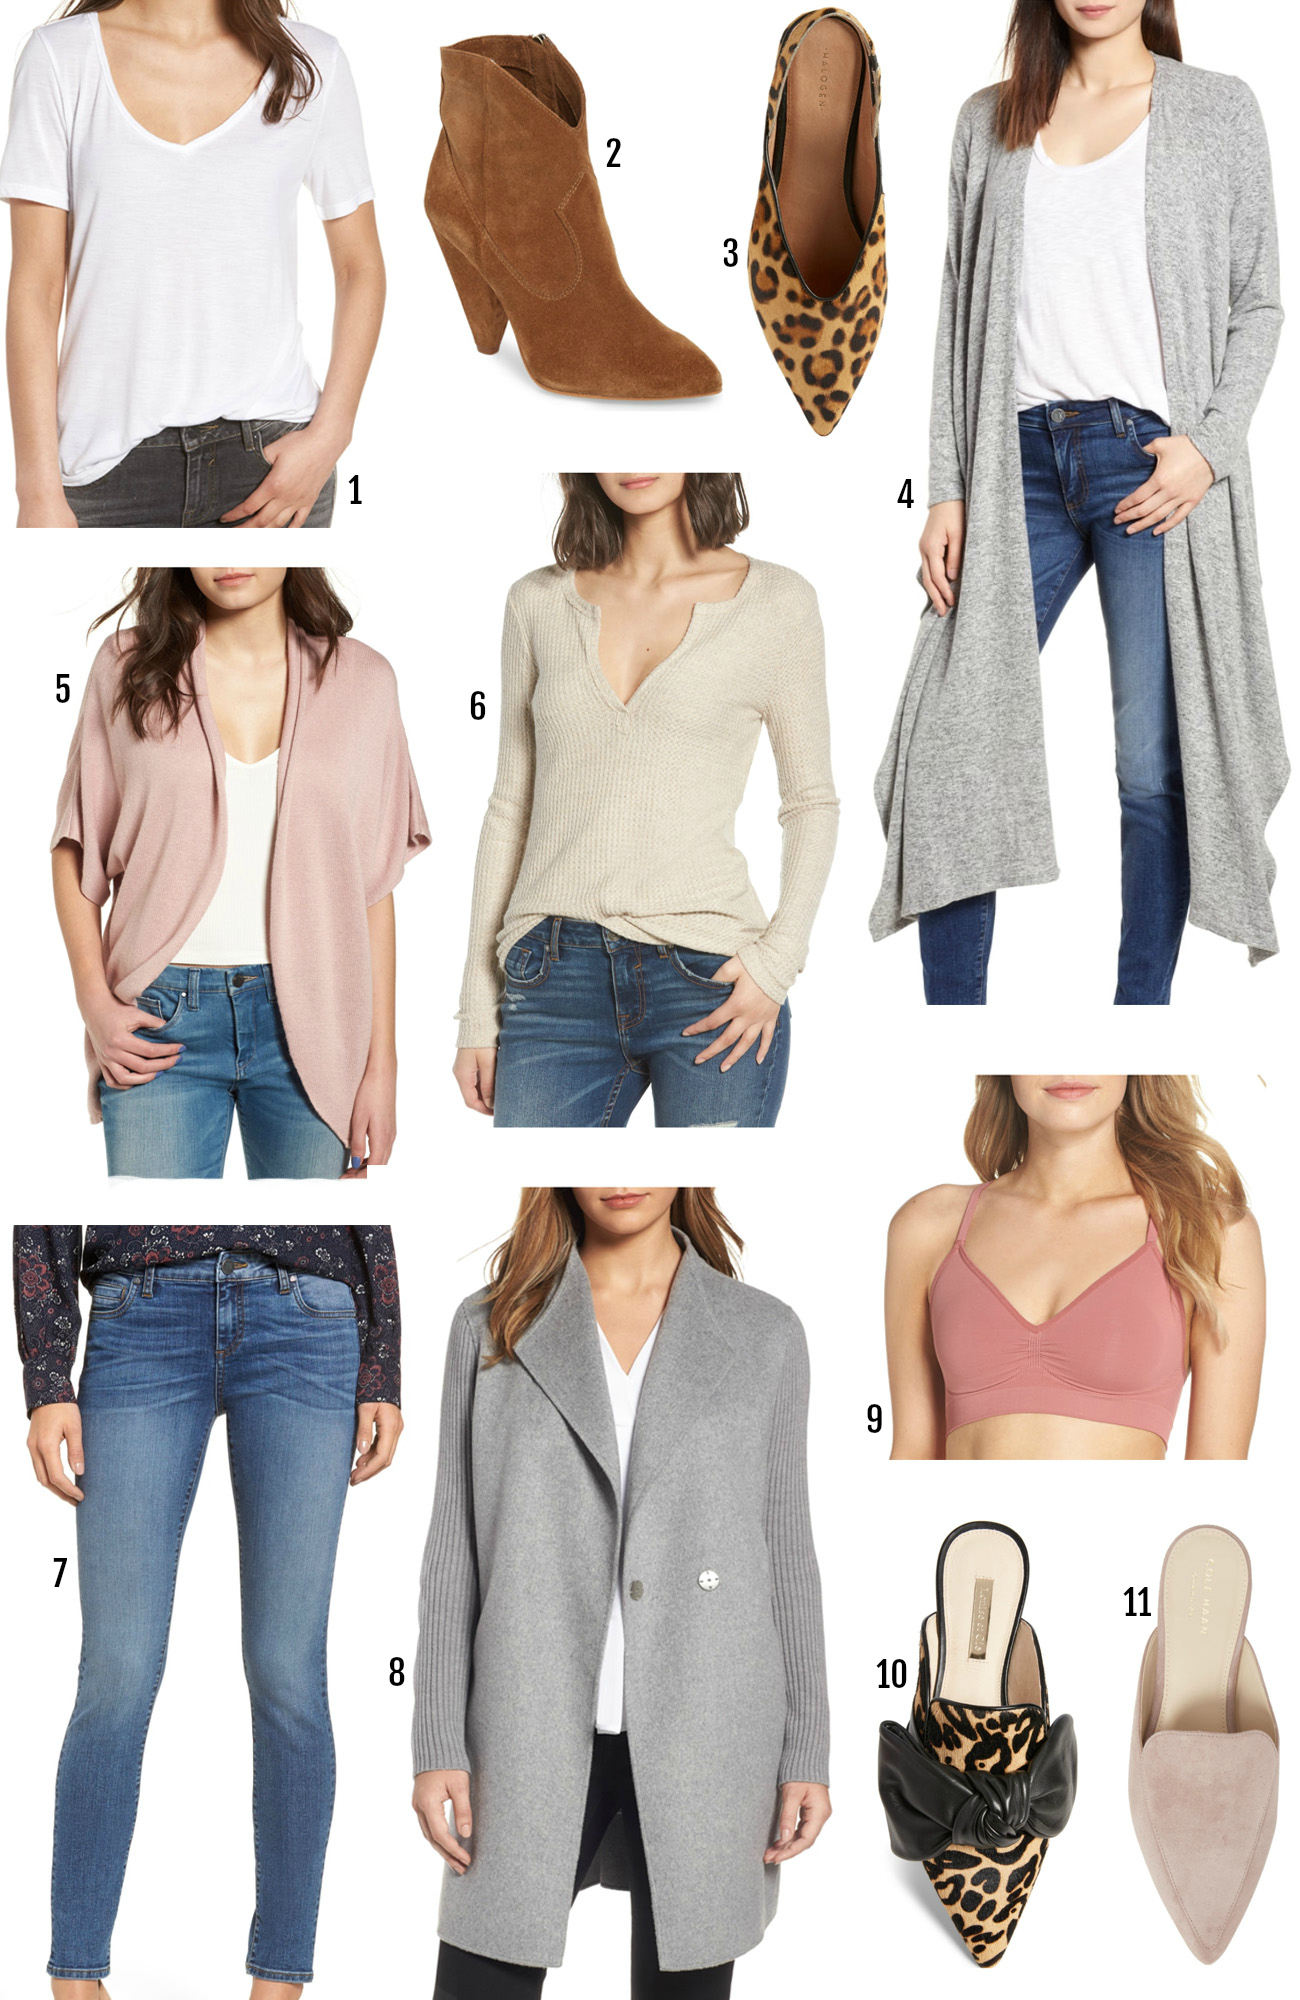 best of the Nordstrom Anniversary Sale 2018 | best fall staples | fall booties | cardigans | flats | blanket scarves | plaid top | pea coat | affordable deals | best of the Nsale